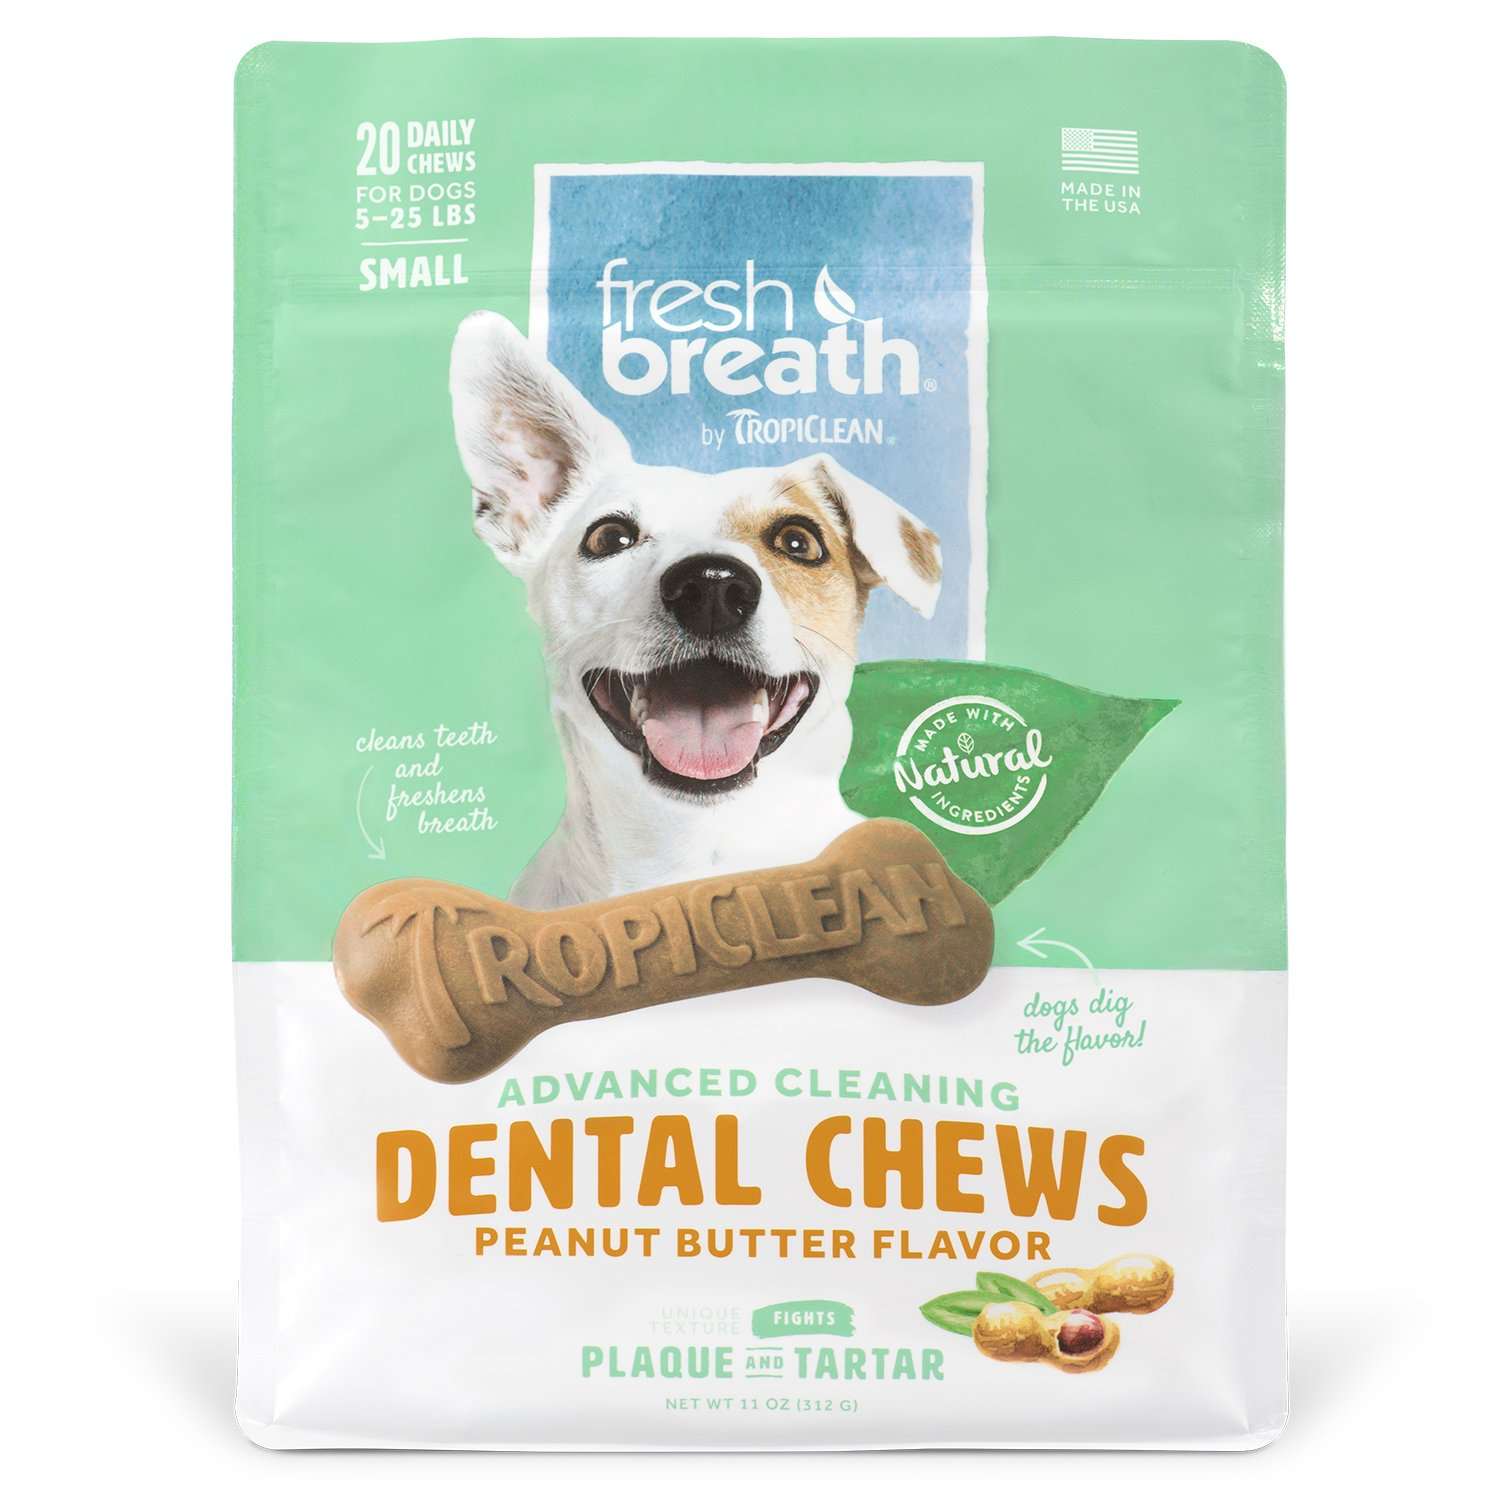 TropiClean Fresh Breath Peanut Butter Flavored Dental Chews, 20 Pack, Small COSCY - pallet ordering FBPBCW-SM